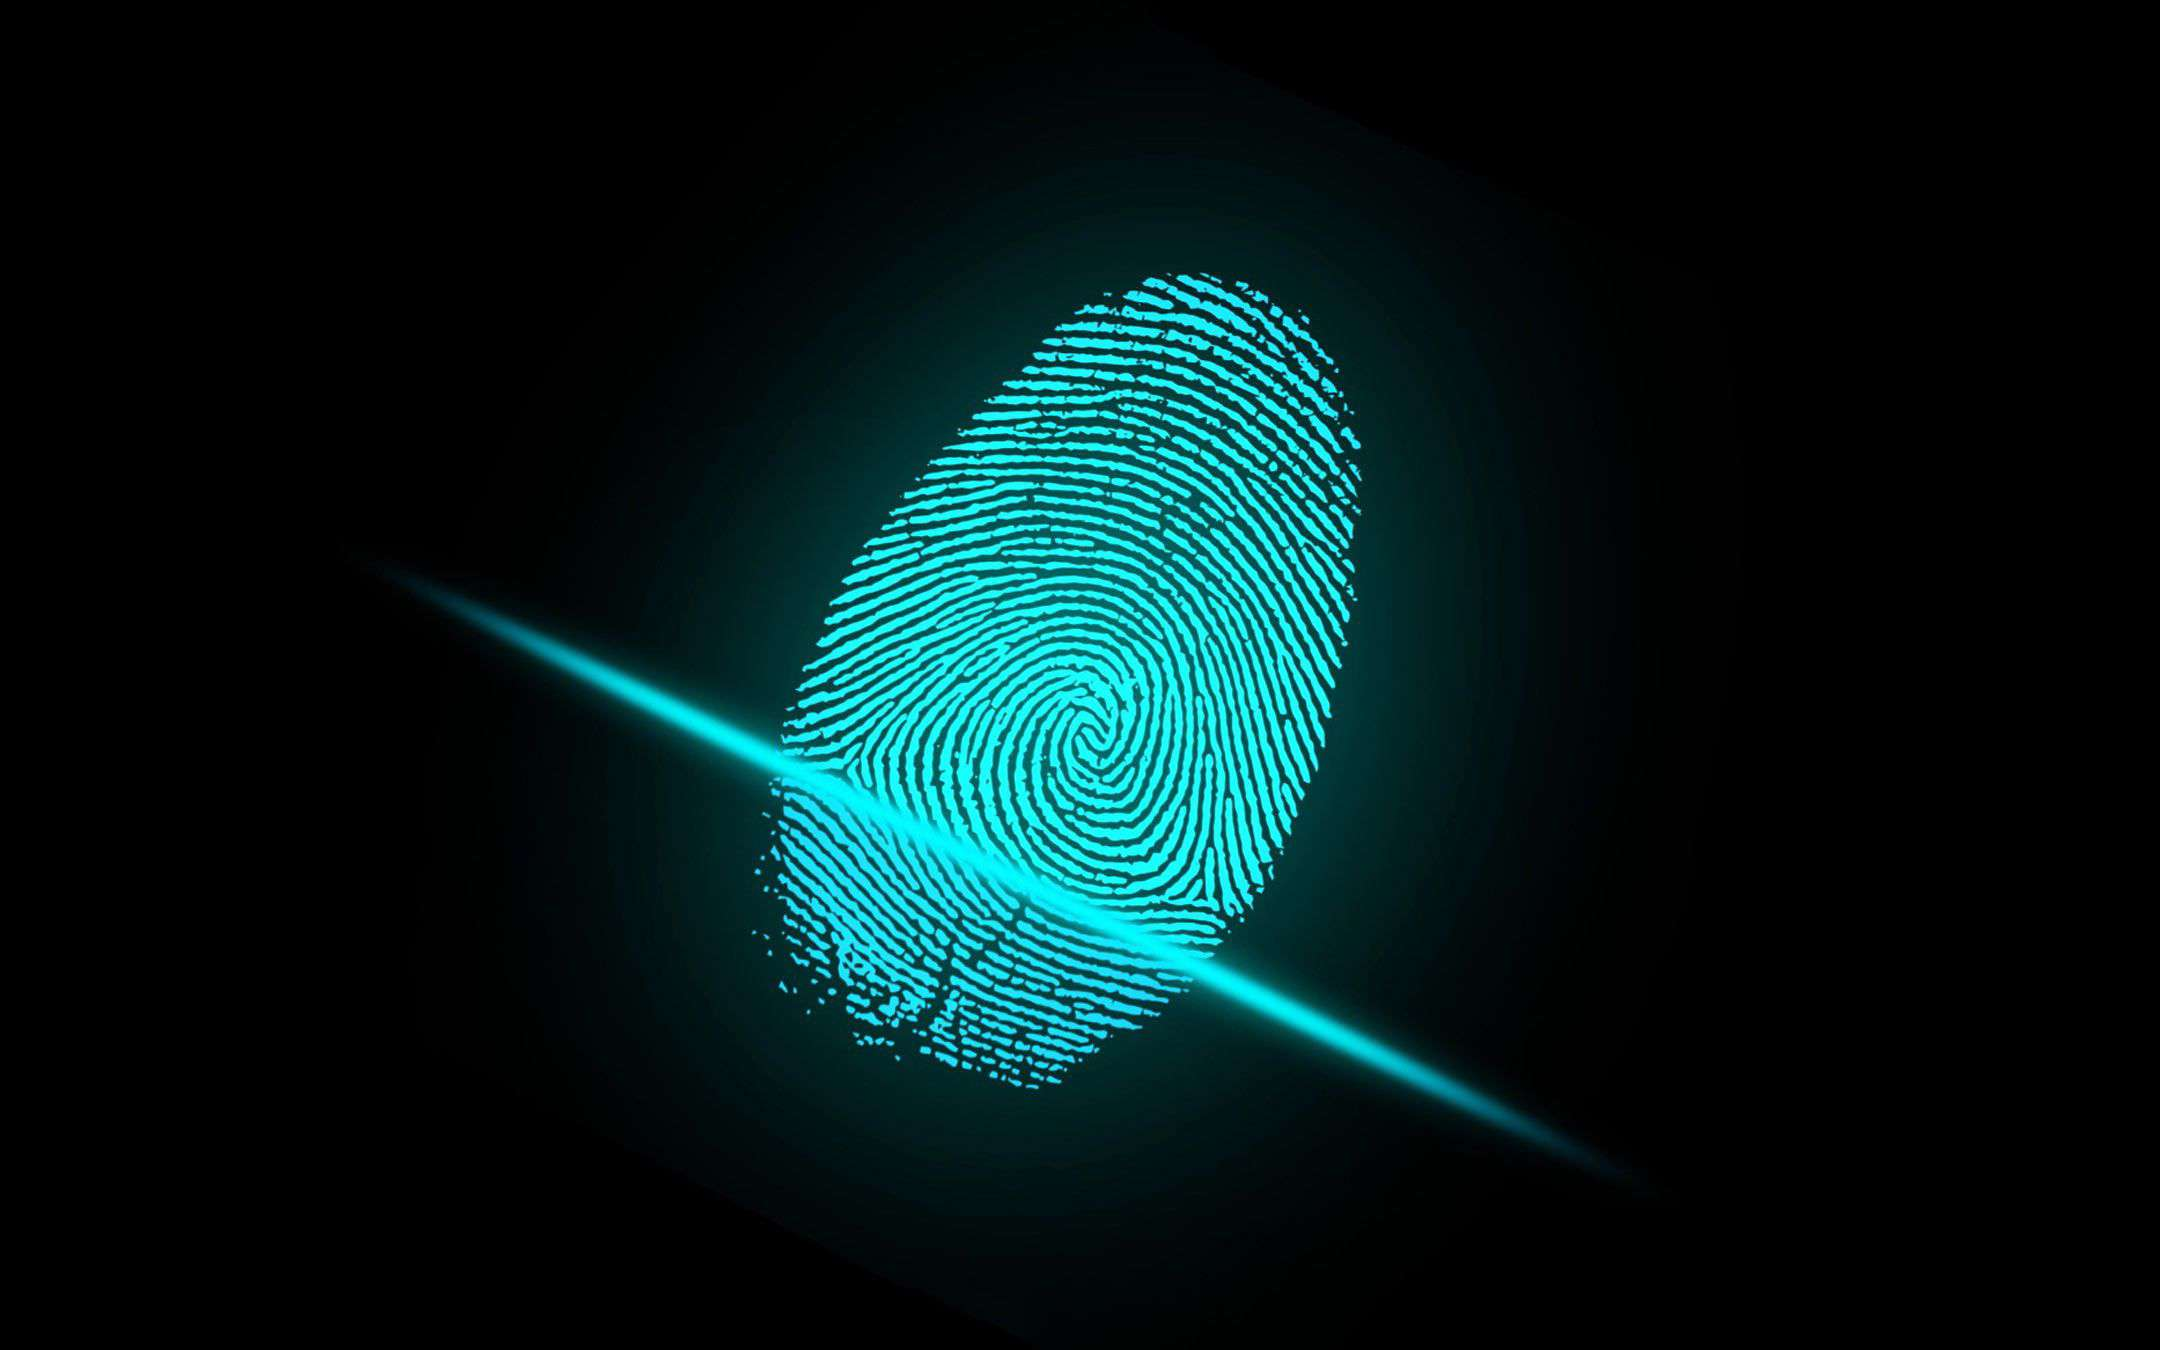 There will be more and more biometrics in digital payments